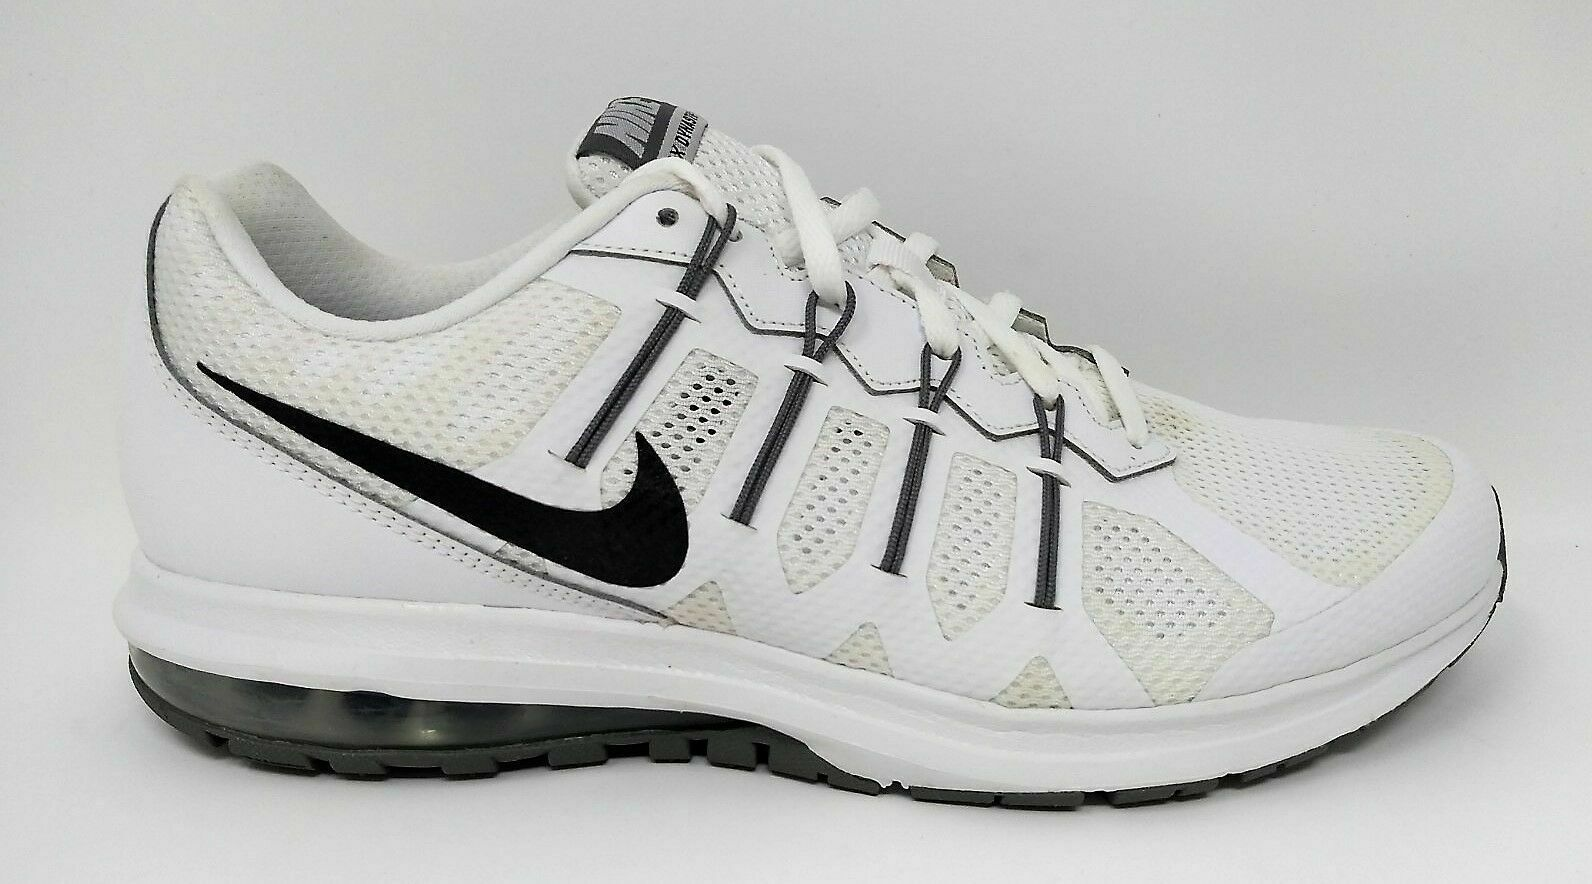 NIKE MENS AIR MAX DYNASTY TRAINING RUNNING SNEAKERS WHITE COOL GREY SIZE 11